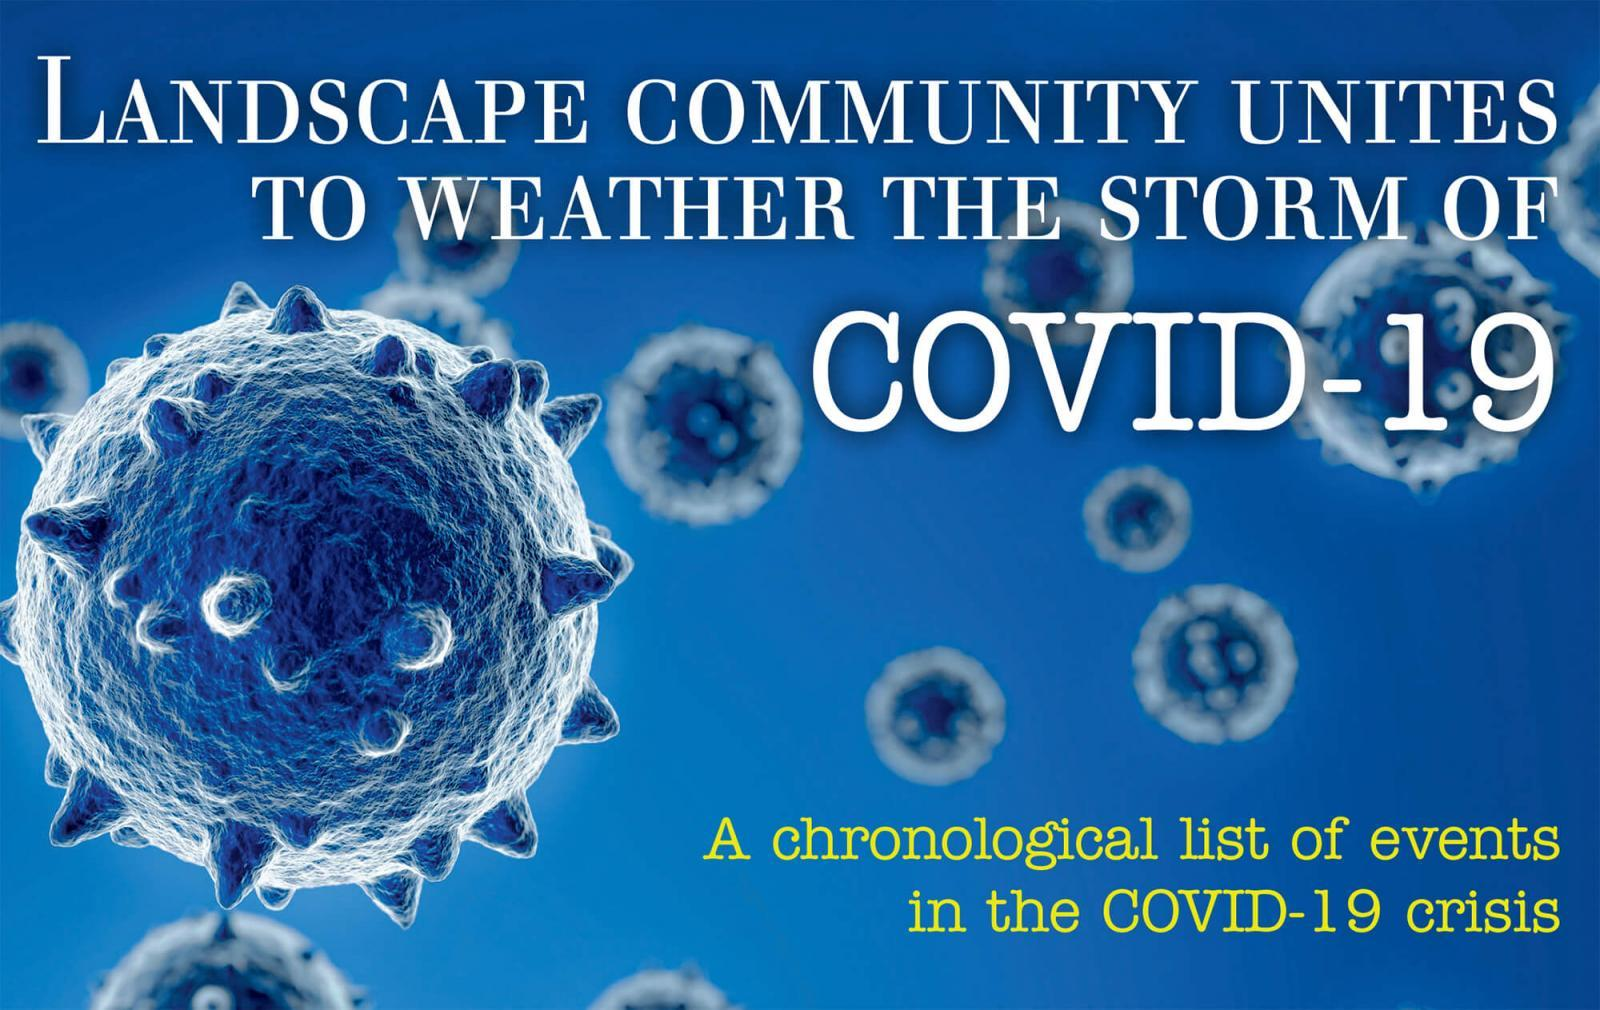 Landscape community unites to weather the storm of COVID-19